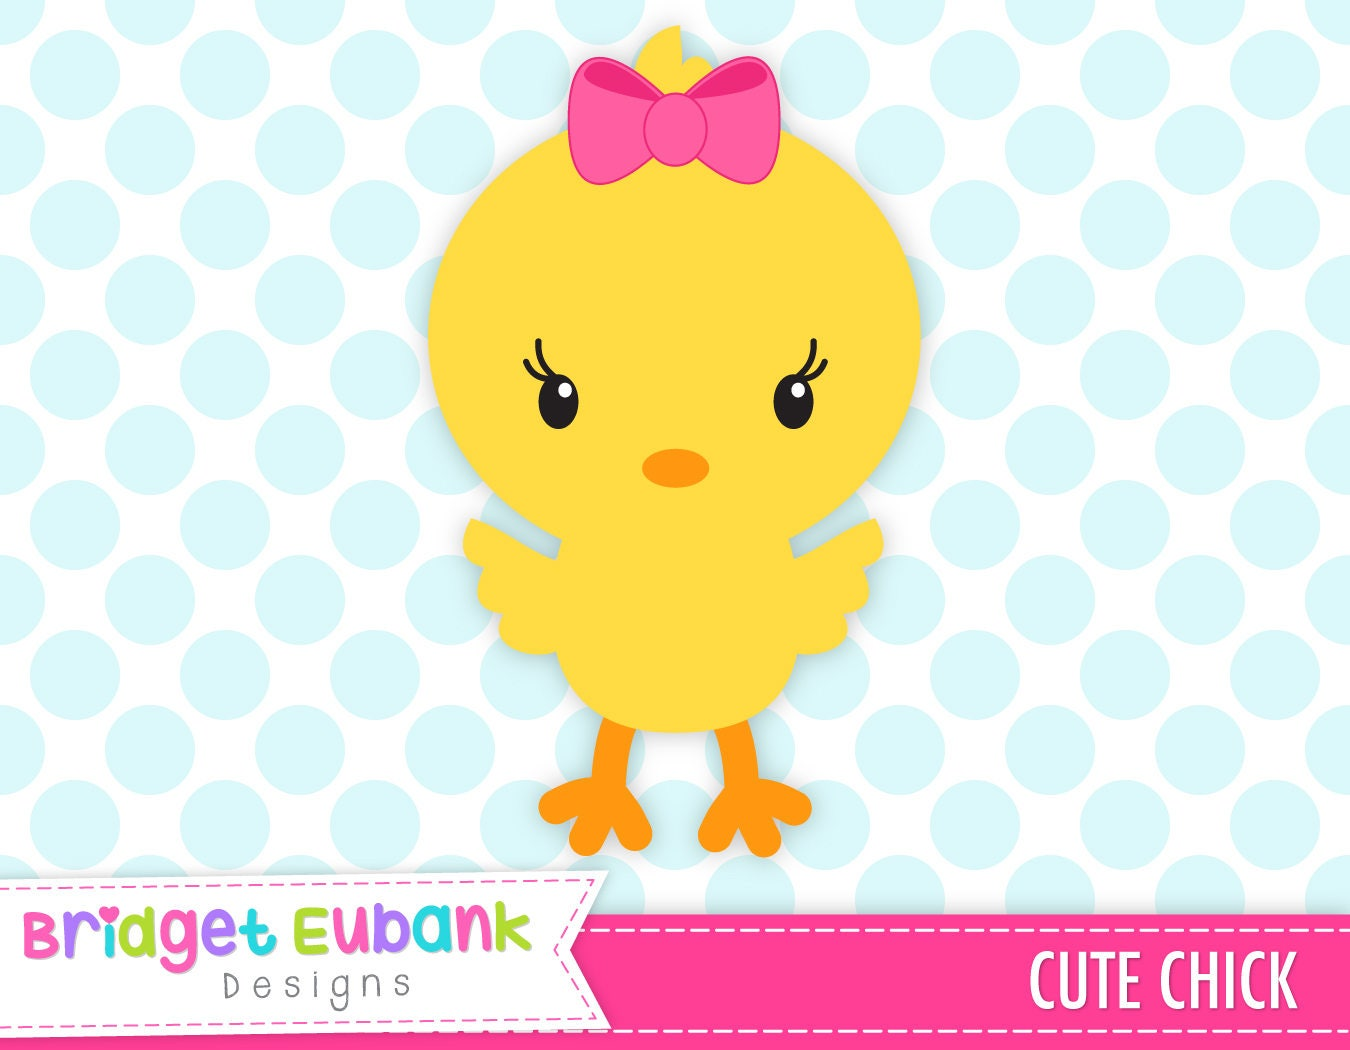 Easter chick clip art Easter clipart cute chick baby chick